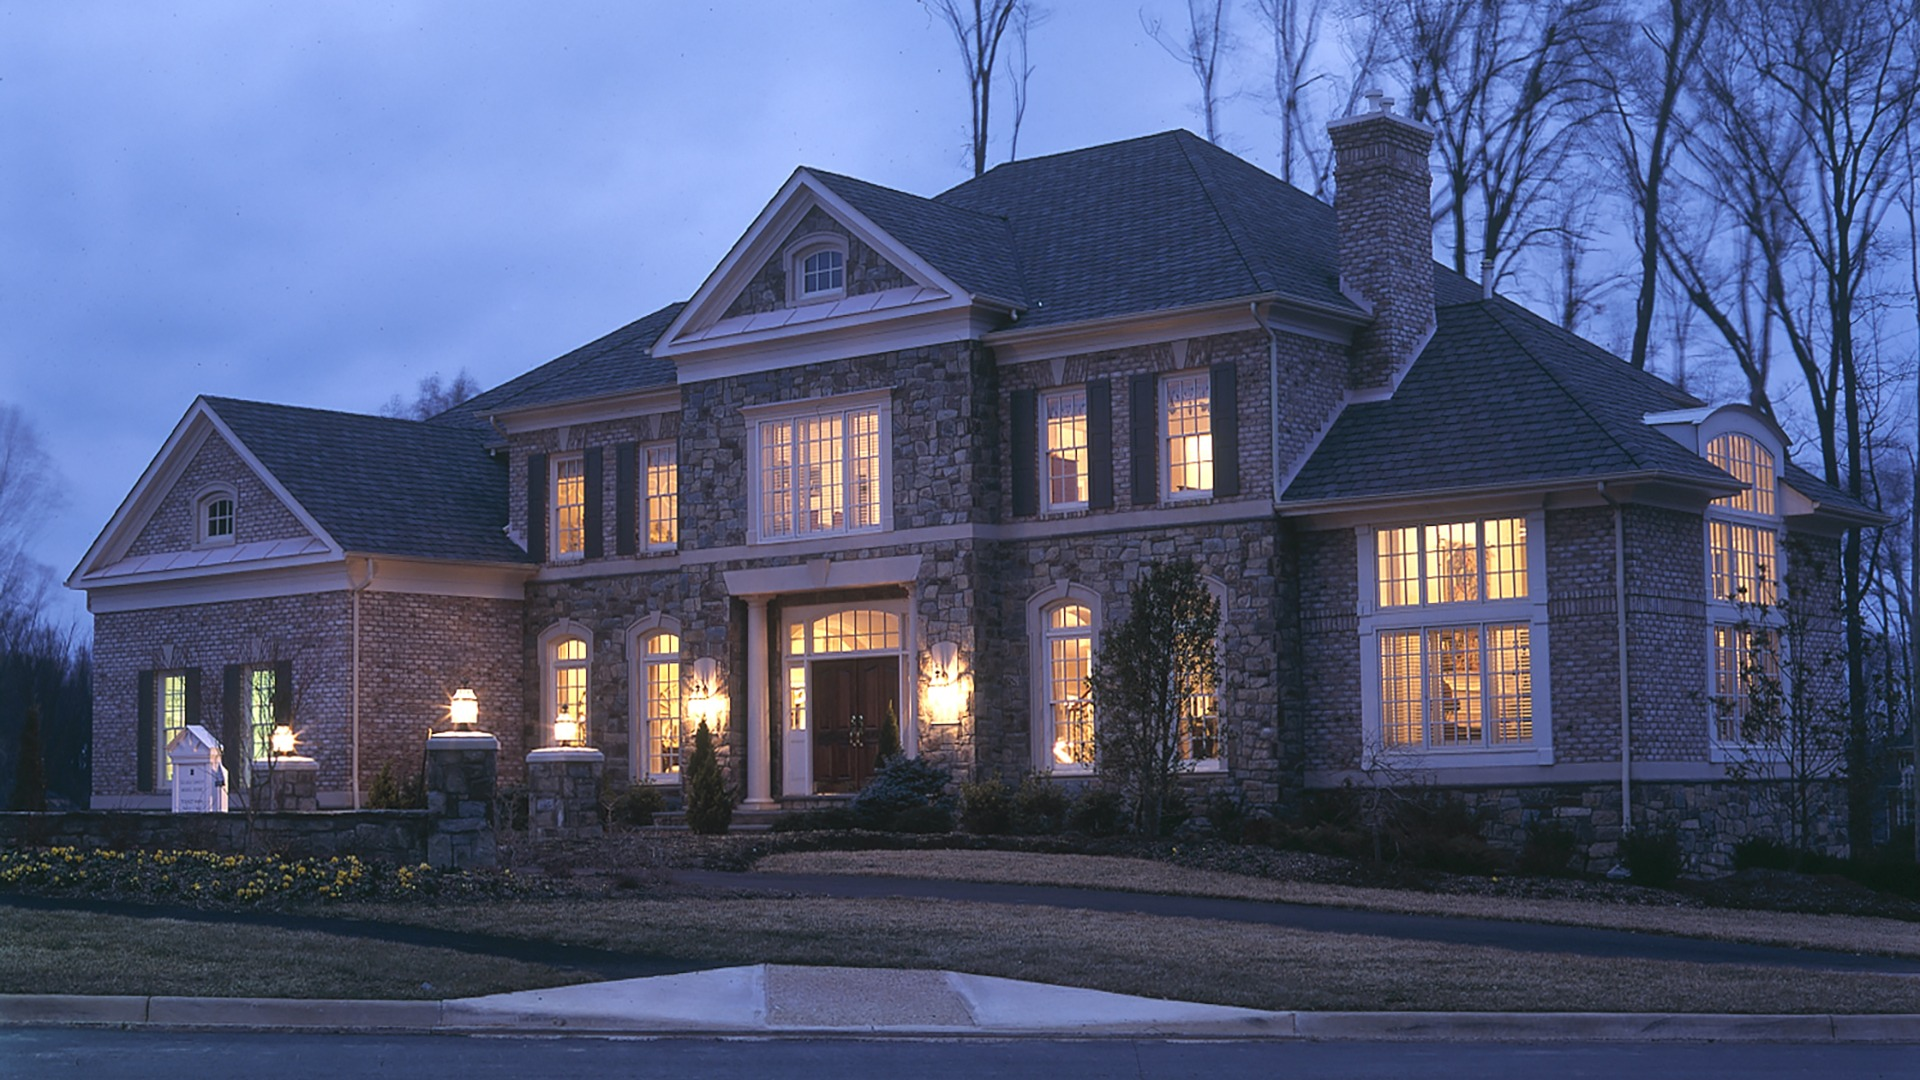 Woodley Front Elevation at dusk. Some optional features shown.